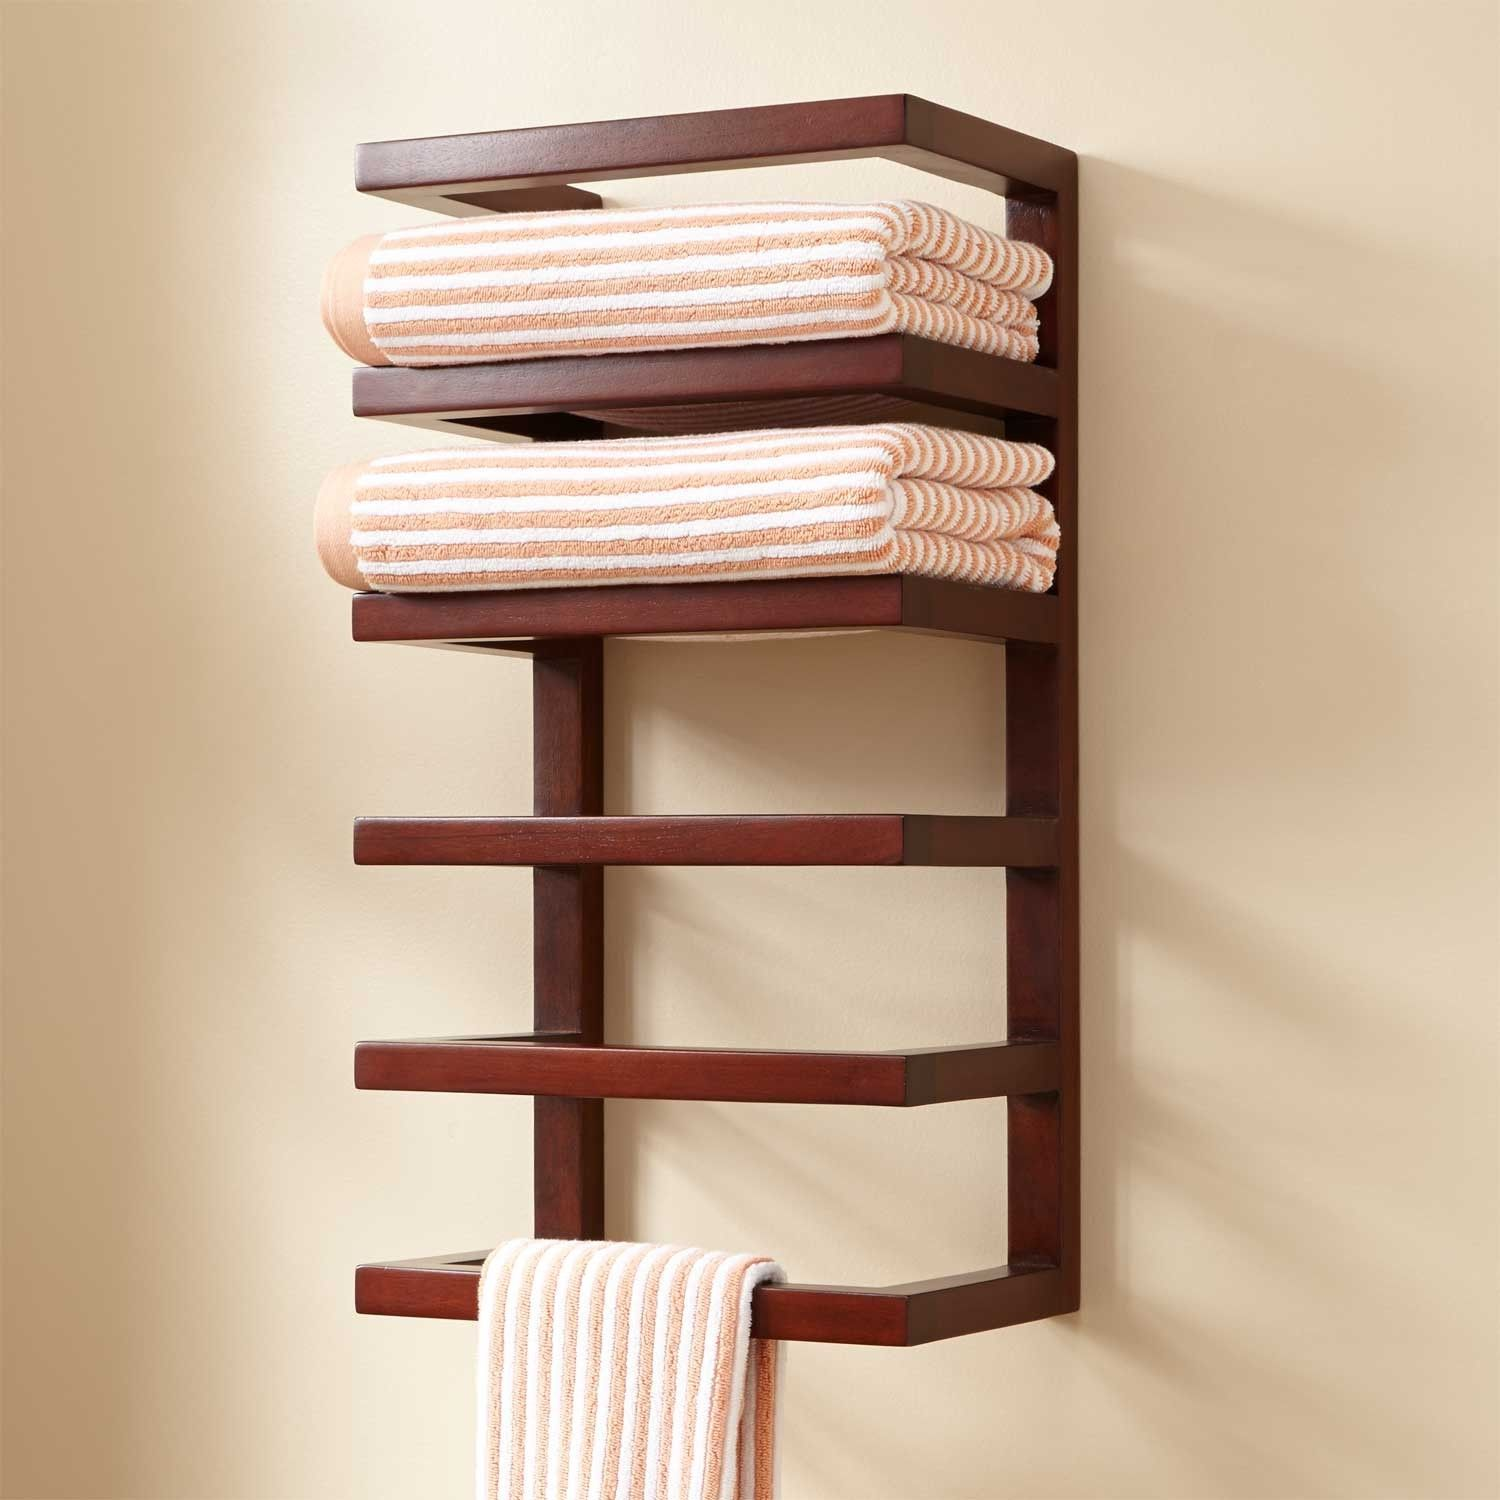 Mahogany Hanging Towel Rack Towel Holders Bathroom Accessories - Bathroom towel bars and toilet paper holders for bathroom decor ideas